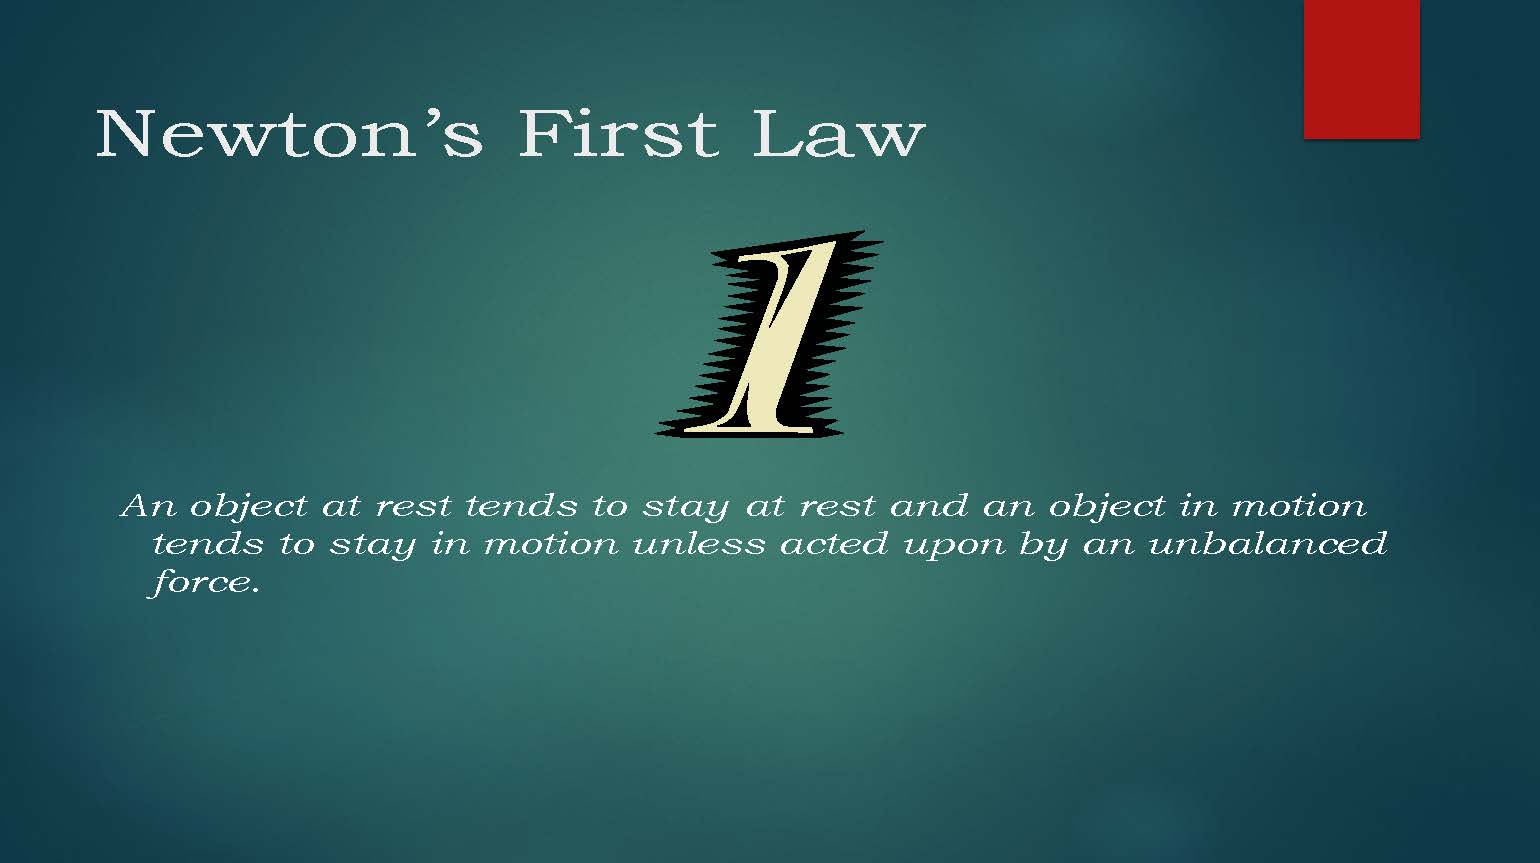 newtons law of motion In this article, we will consider newtons second law of motion, which relates the net force to the mass and acceleration of an object, and newtons third law of motion.